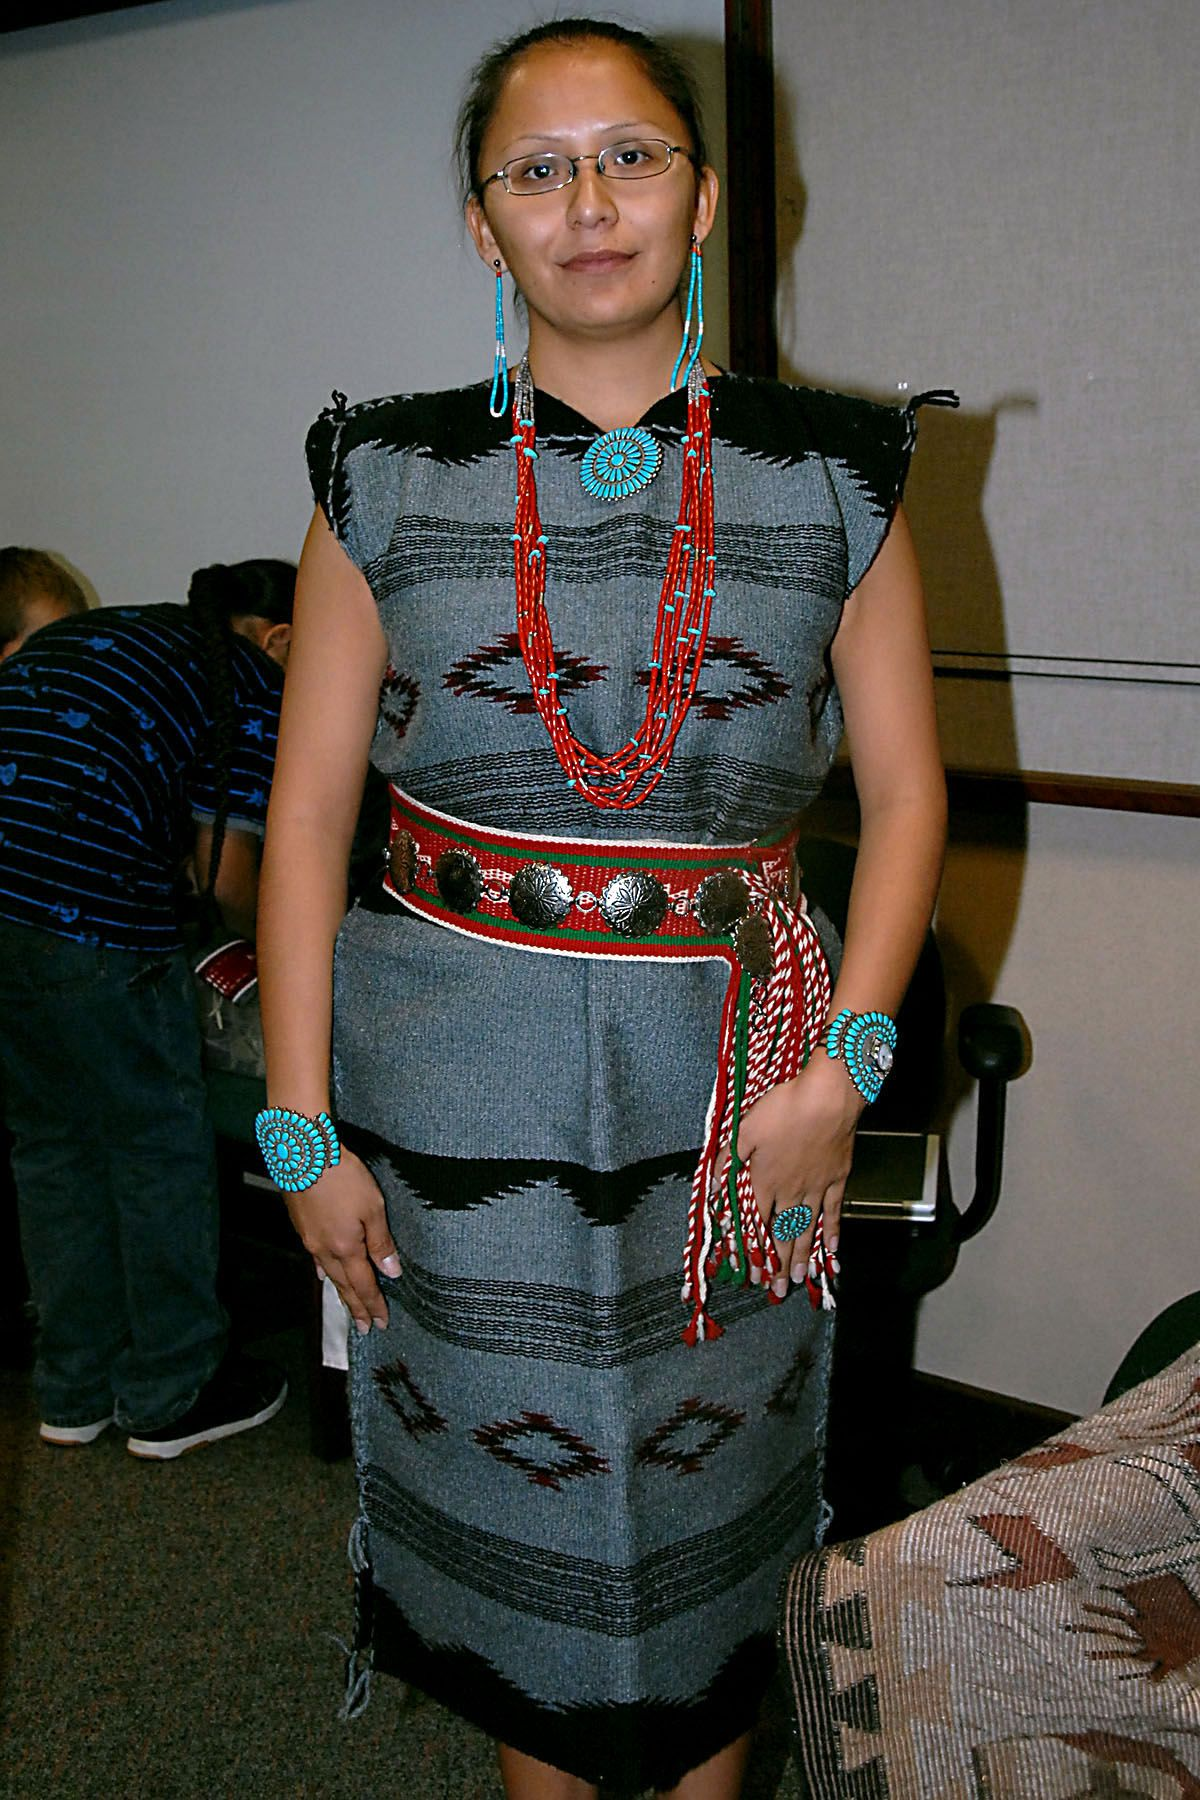 Navajo Dress Amp Turquoise Amp Woven Belt This Or Traditional